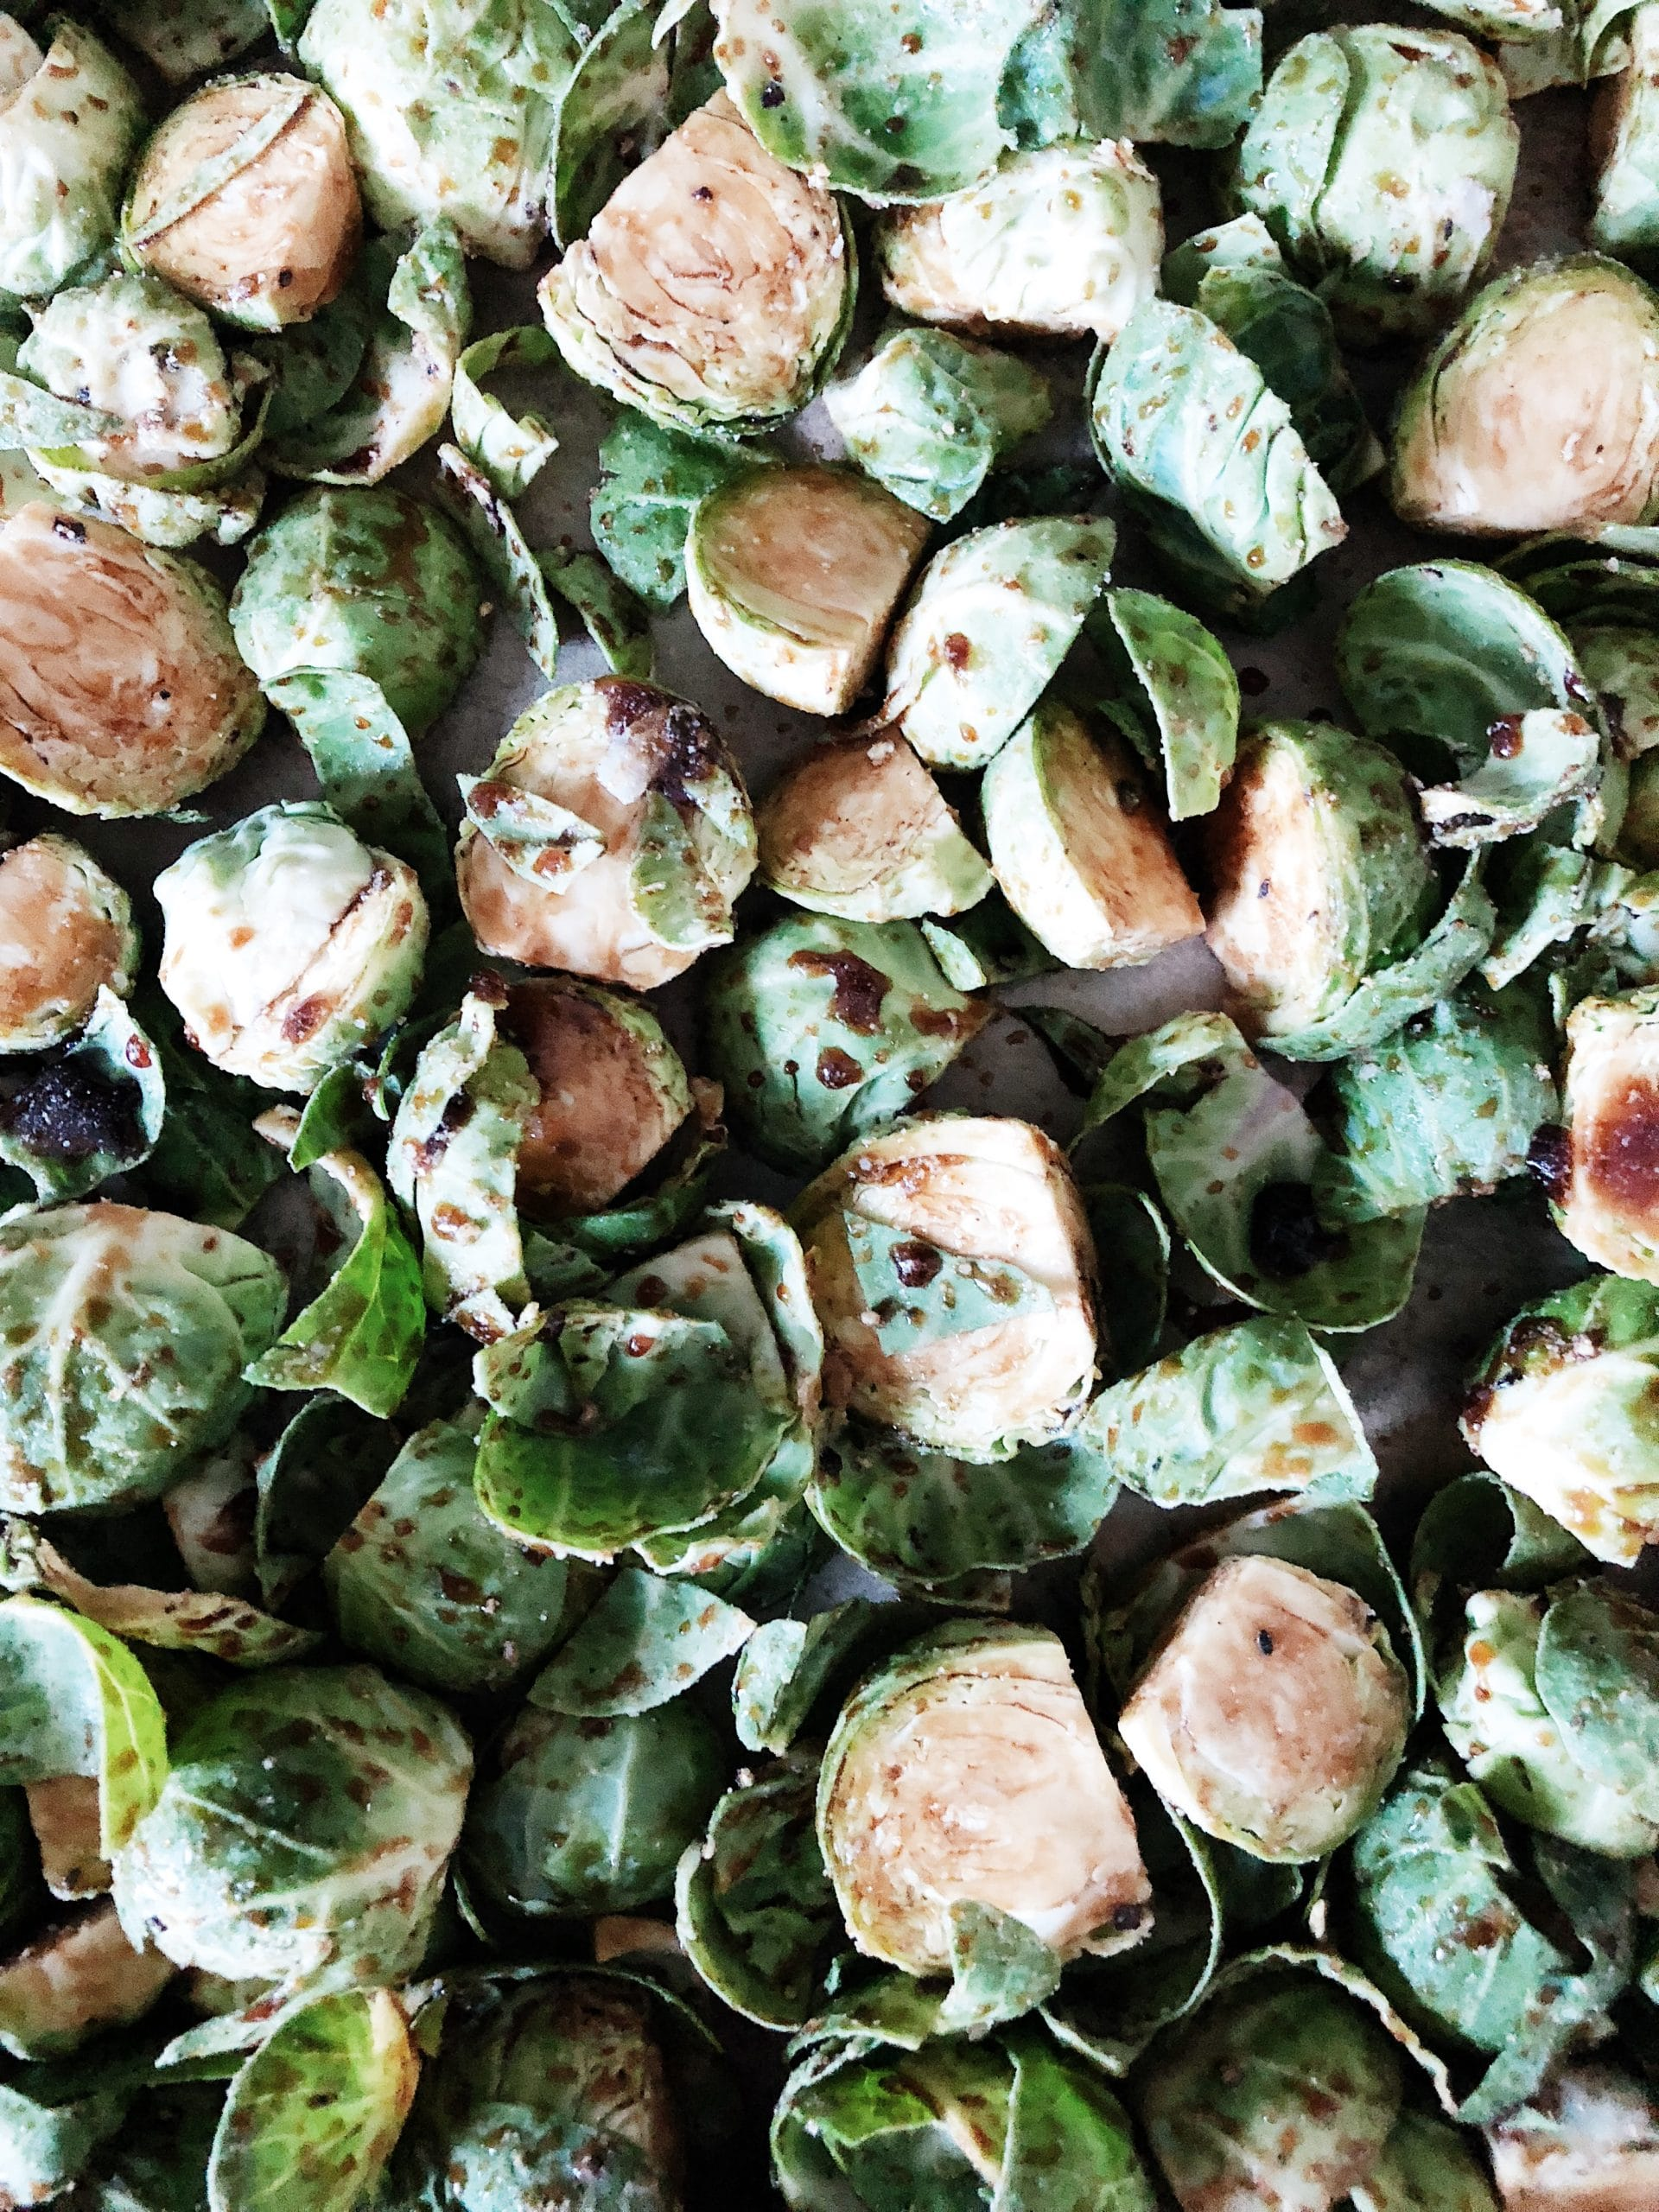 Image of maple balsamic brussels sprouts